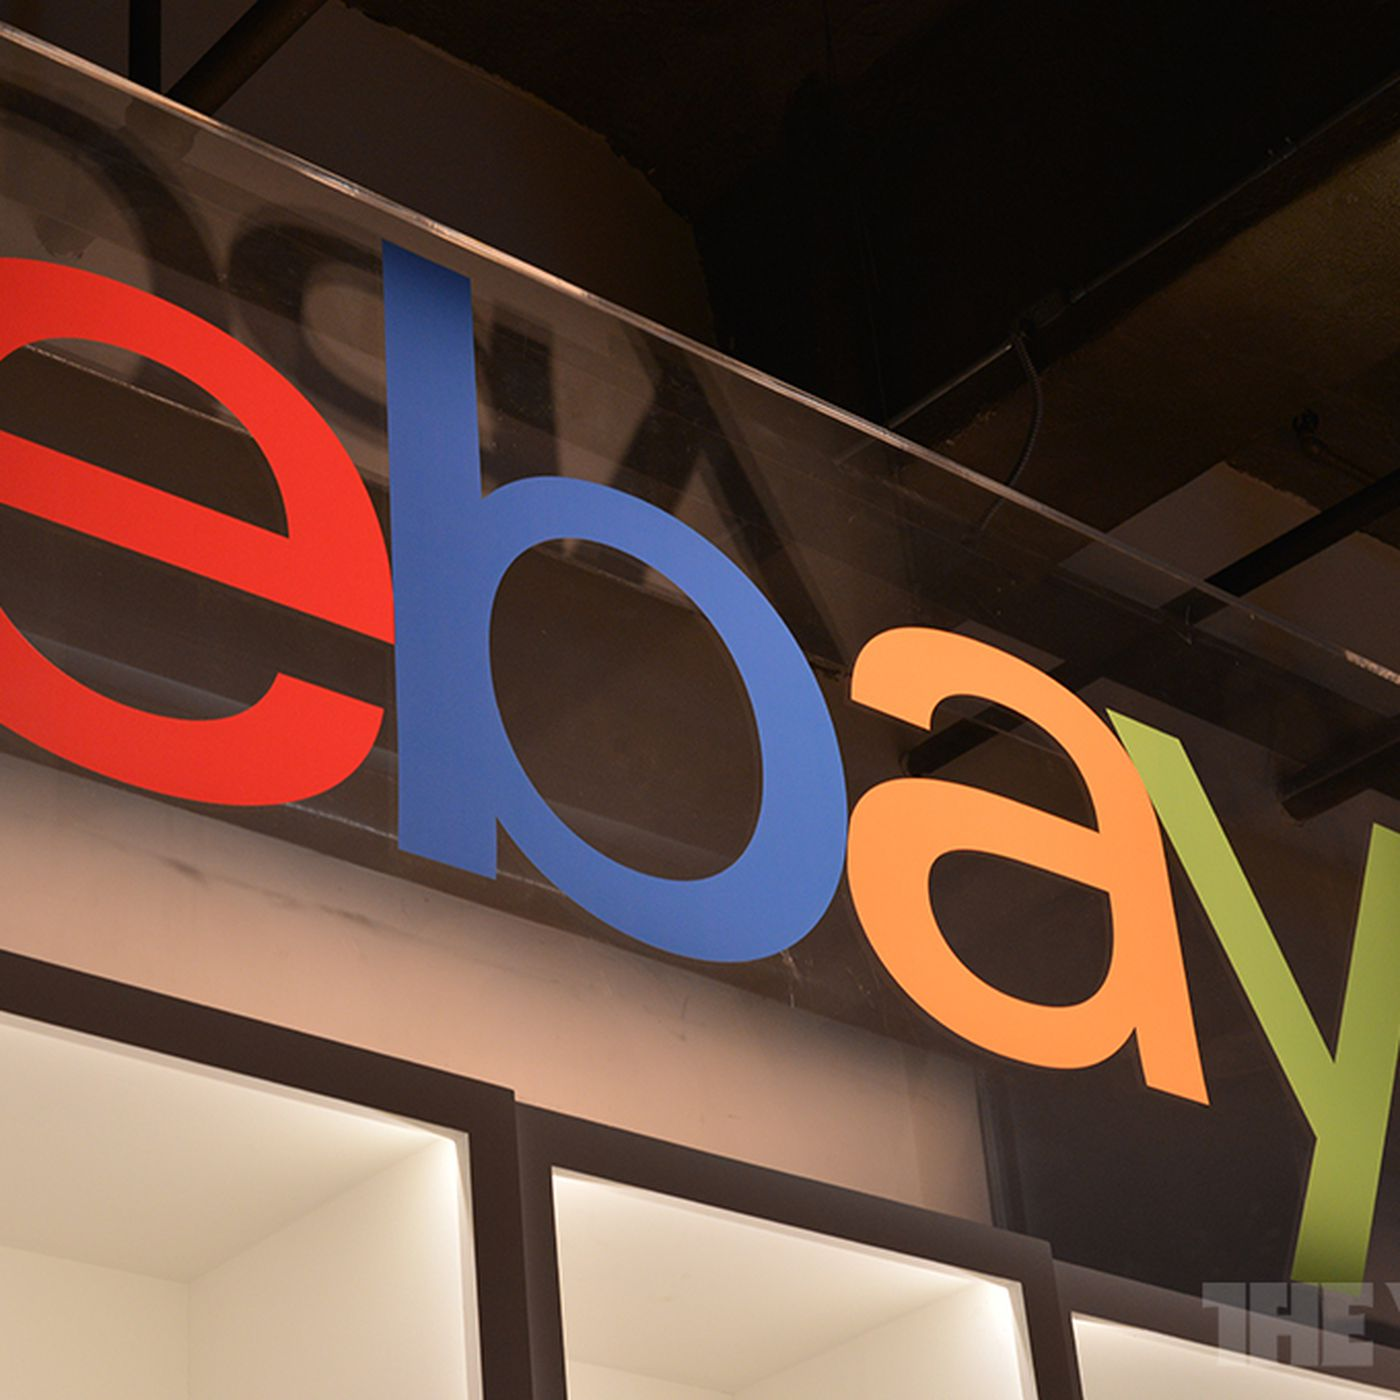 Ebay To Overhaul Fees This Spring In Bid To Keep Sellers Away From Amazon The Verge